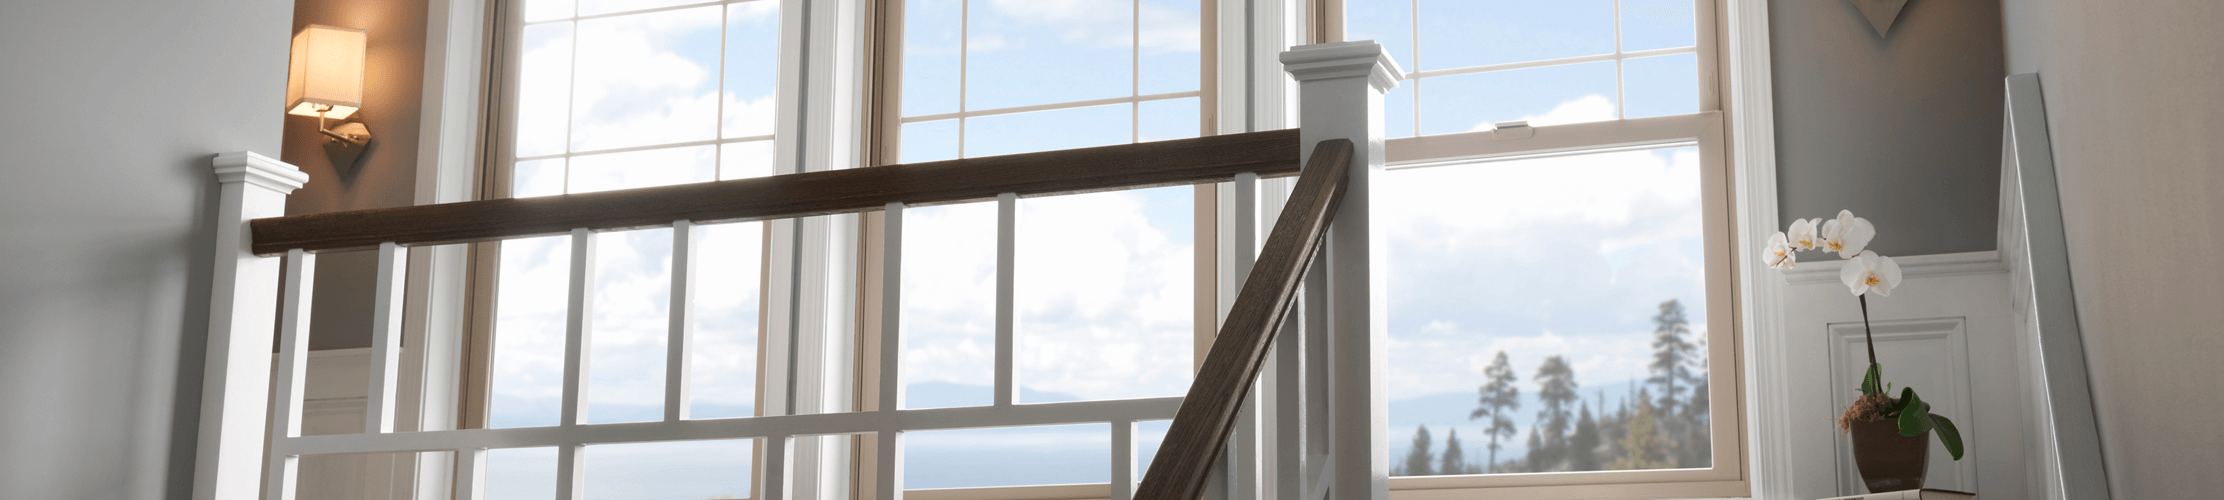 Custom Milgard Glass Windows for your Home